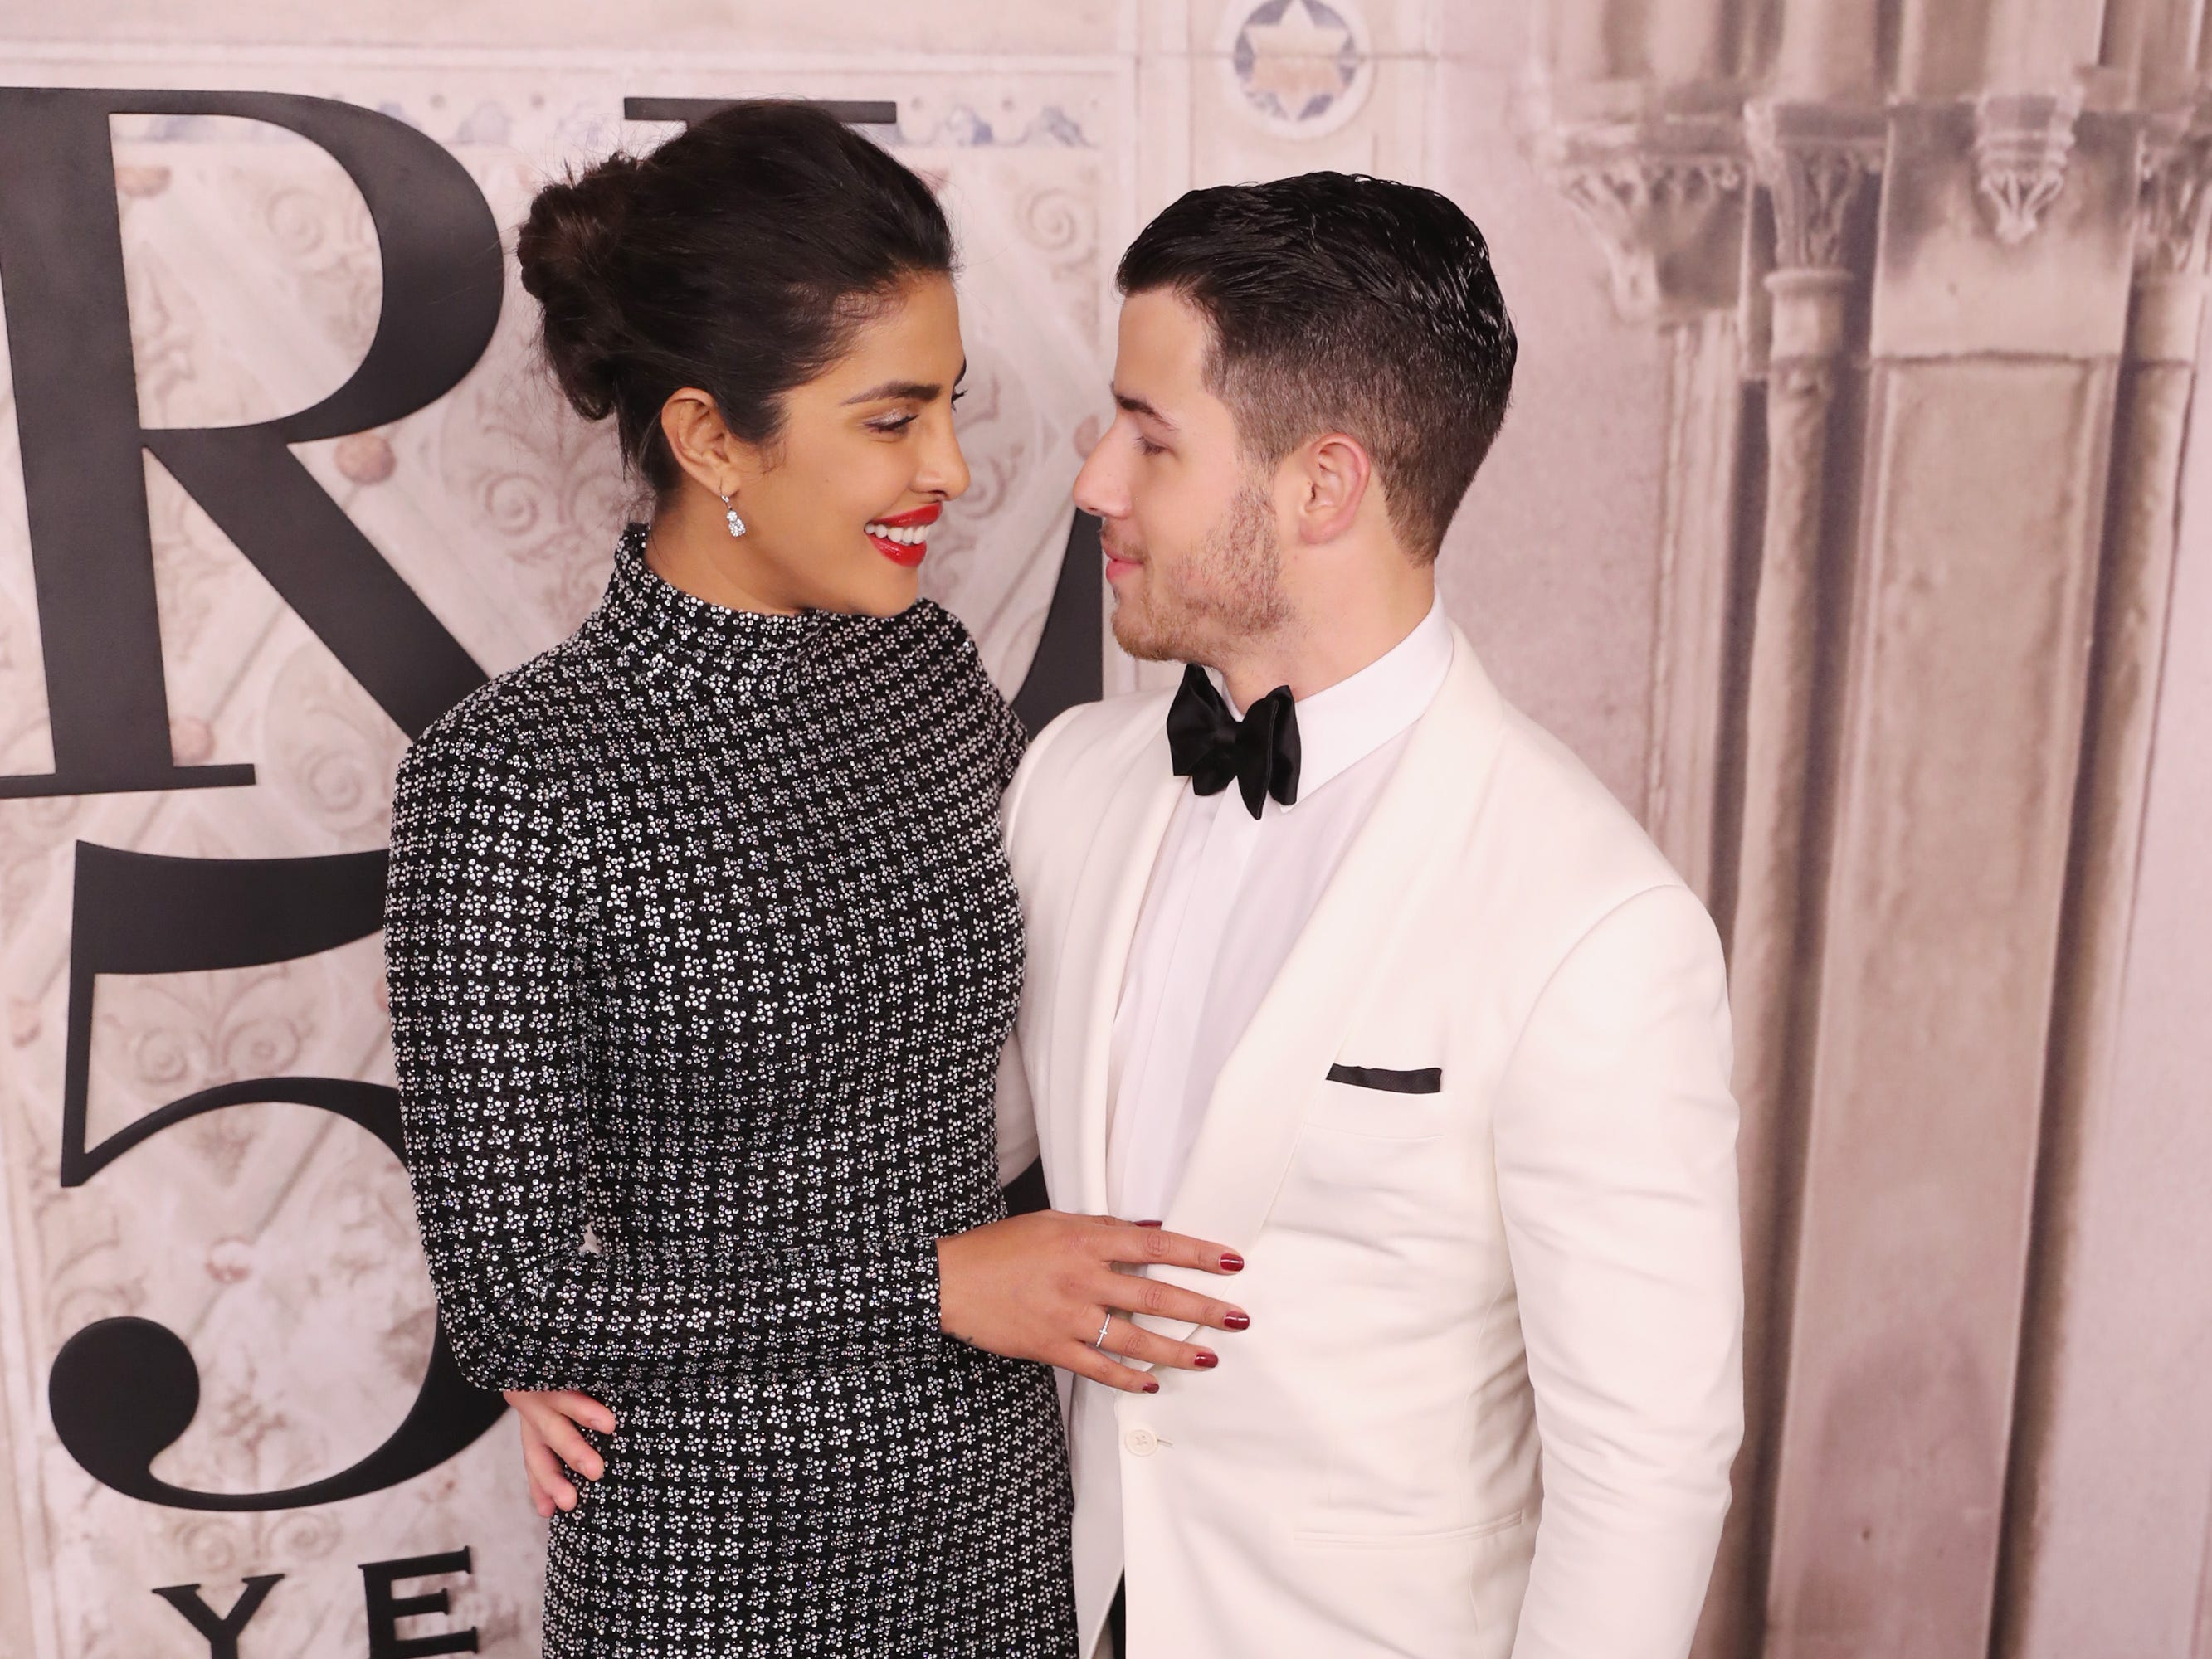 NEW YORK, NY - SEPTEMBER 07:  Priyanka Chopra and Nick Jonas attend the Ralph Lauren fashion show during New York Fashion Week at Bethesda Terrace on September 7, 2018 in New York City.  (Photo by Rob Kim/Getty Images) ORG XMIT: 775216294 ORIG FILE ID: 1028930988